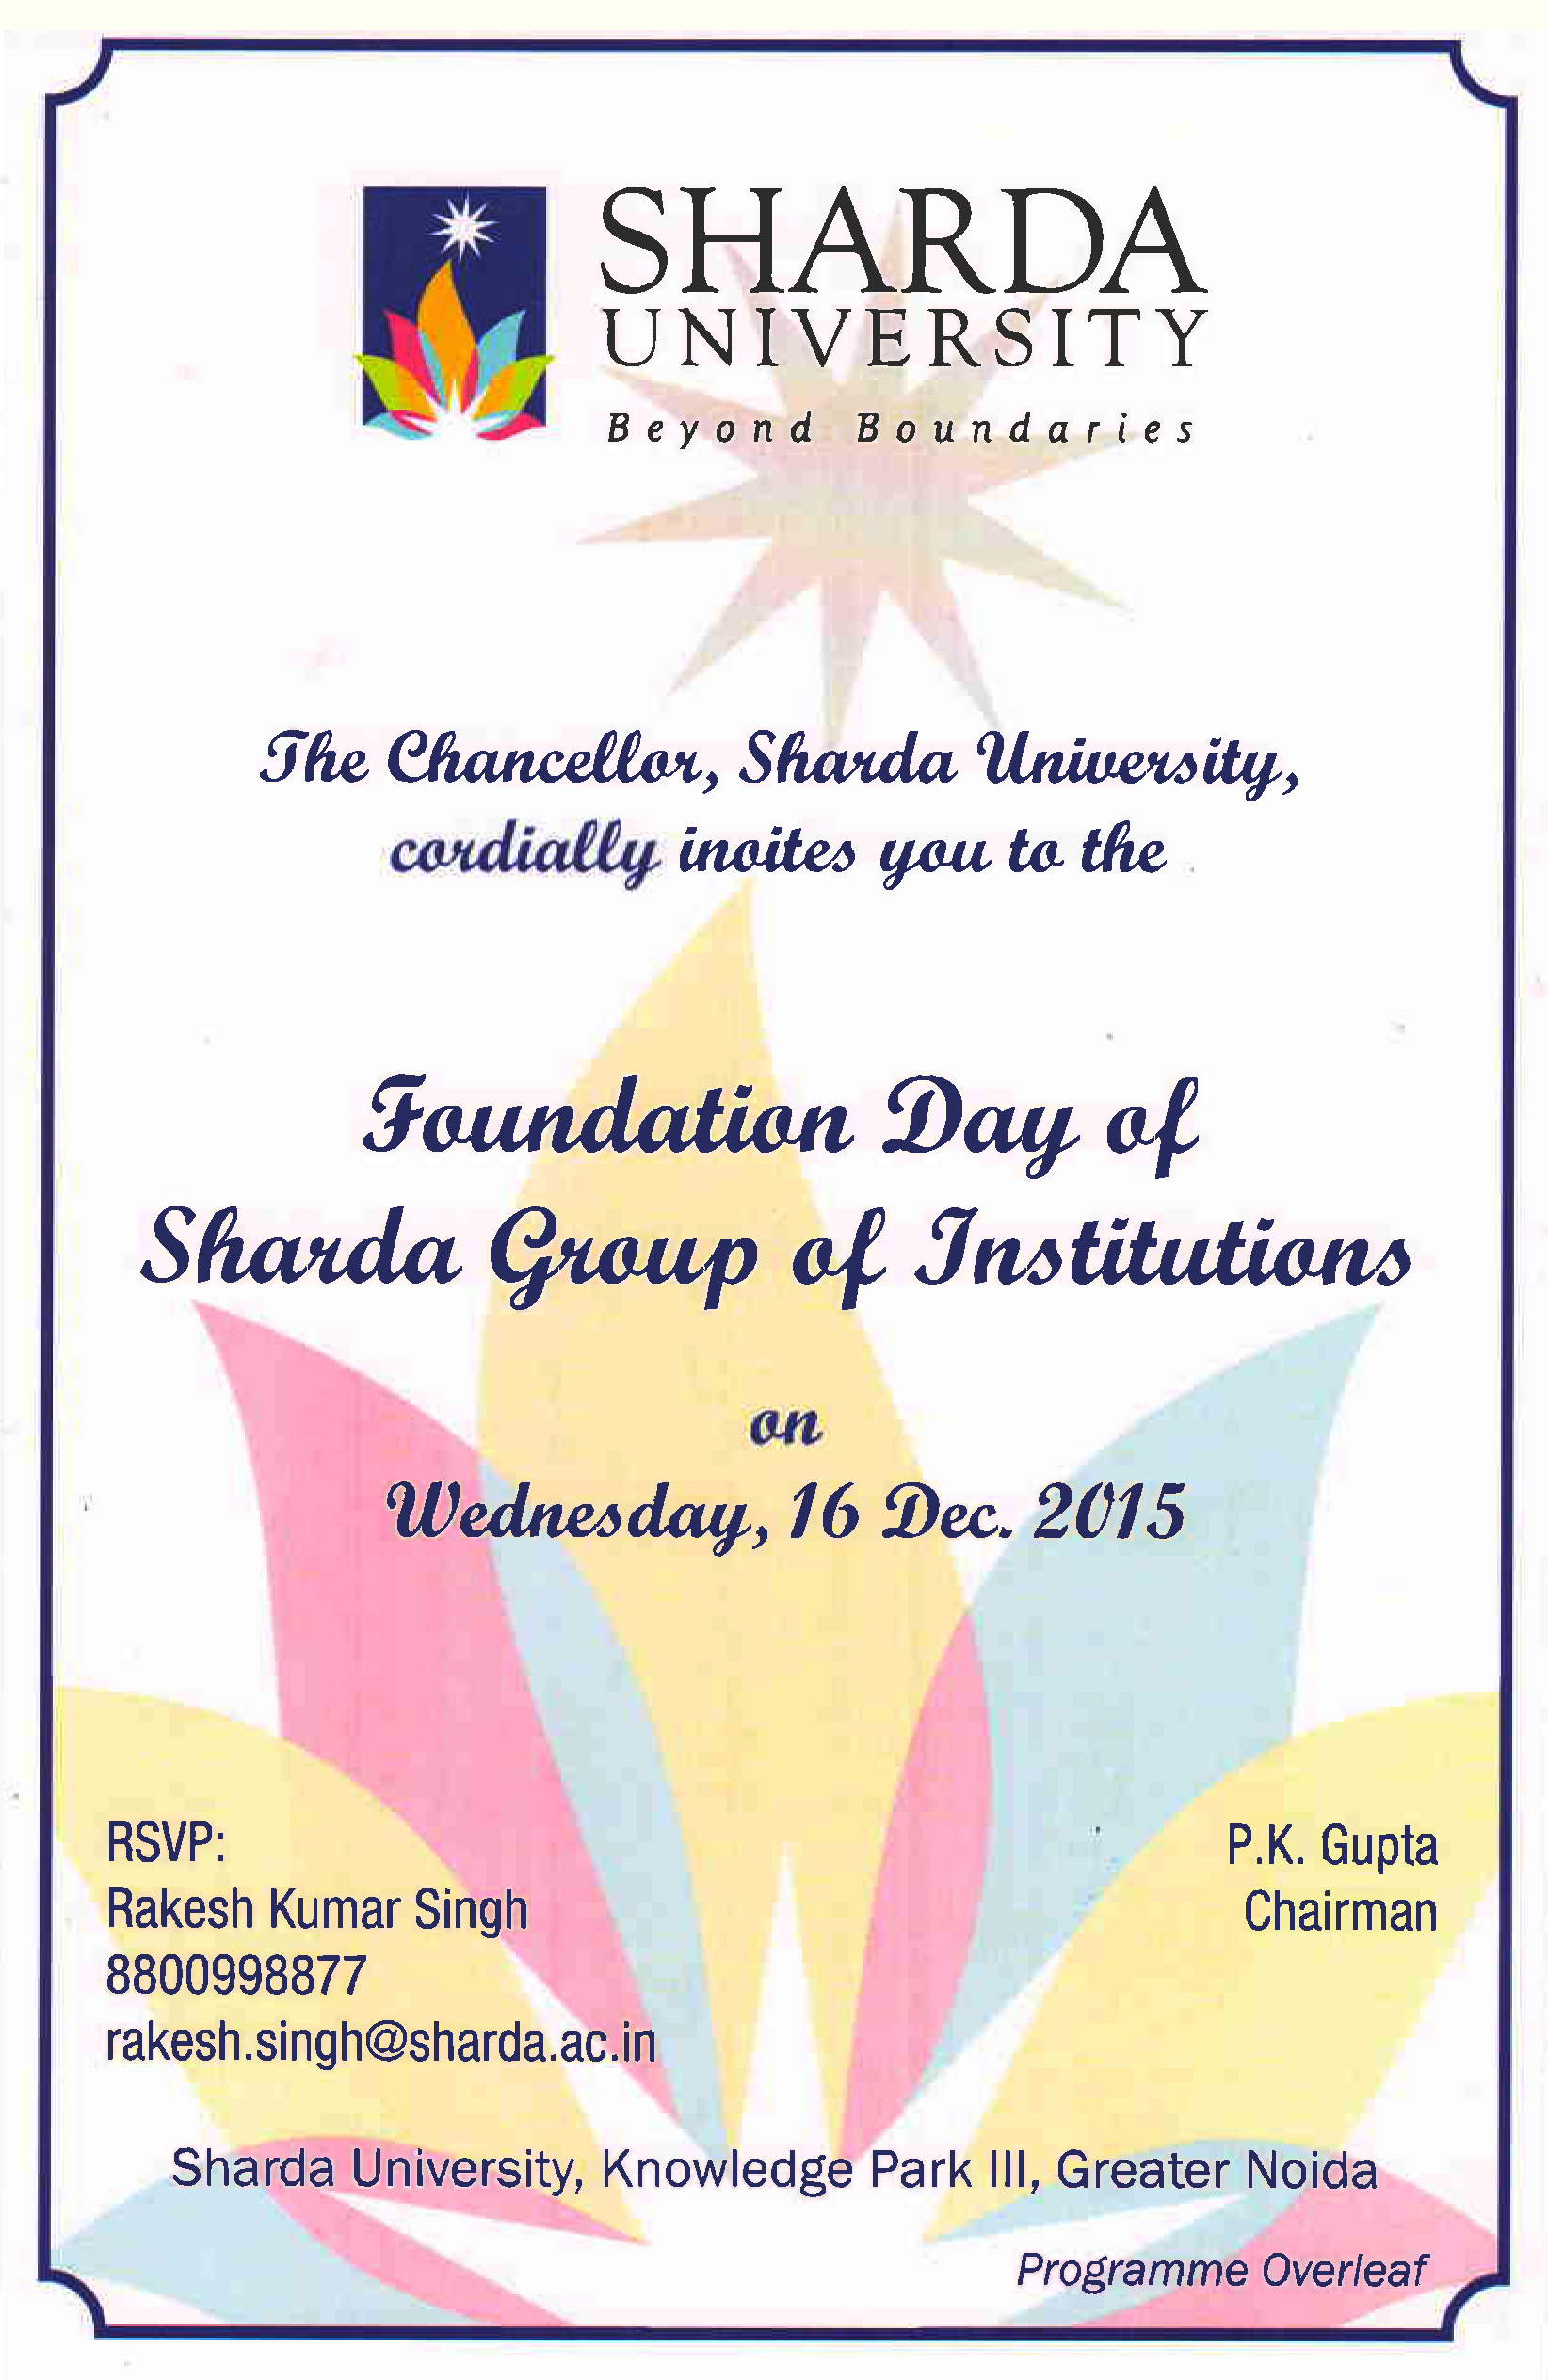 invitation for foundation day celebrations on 16th